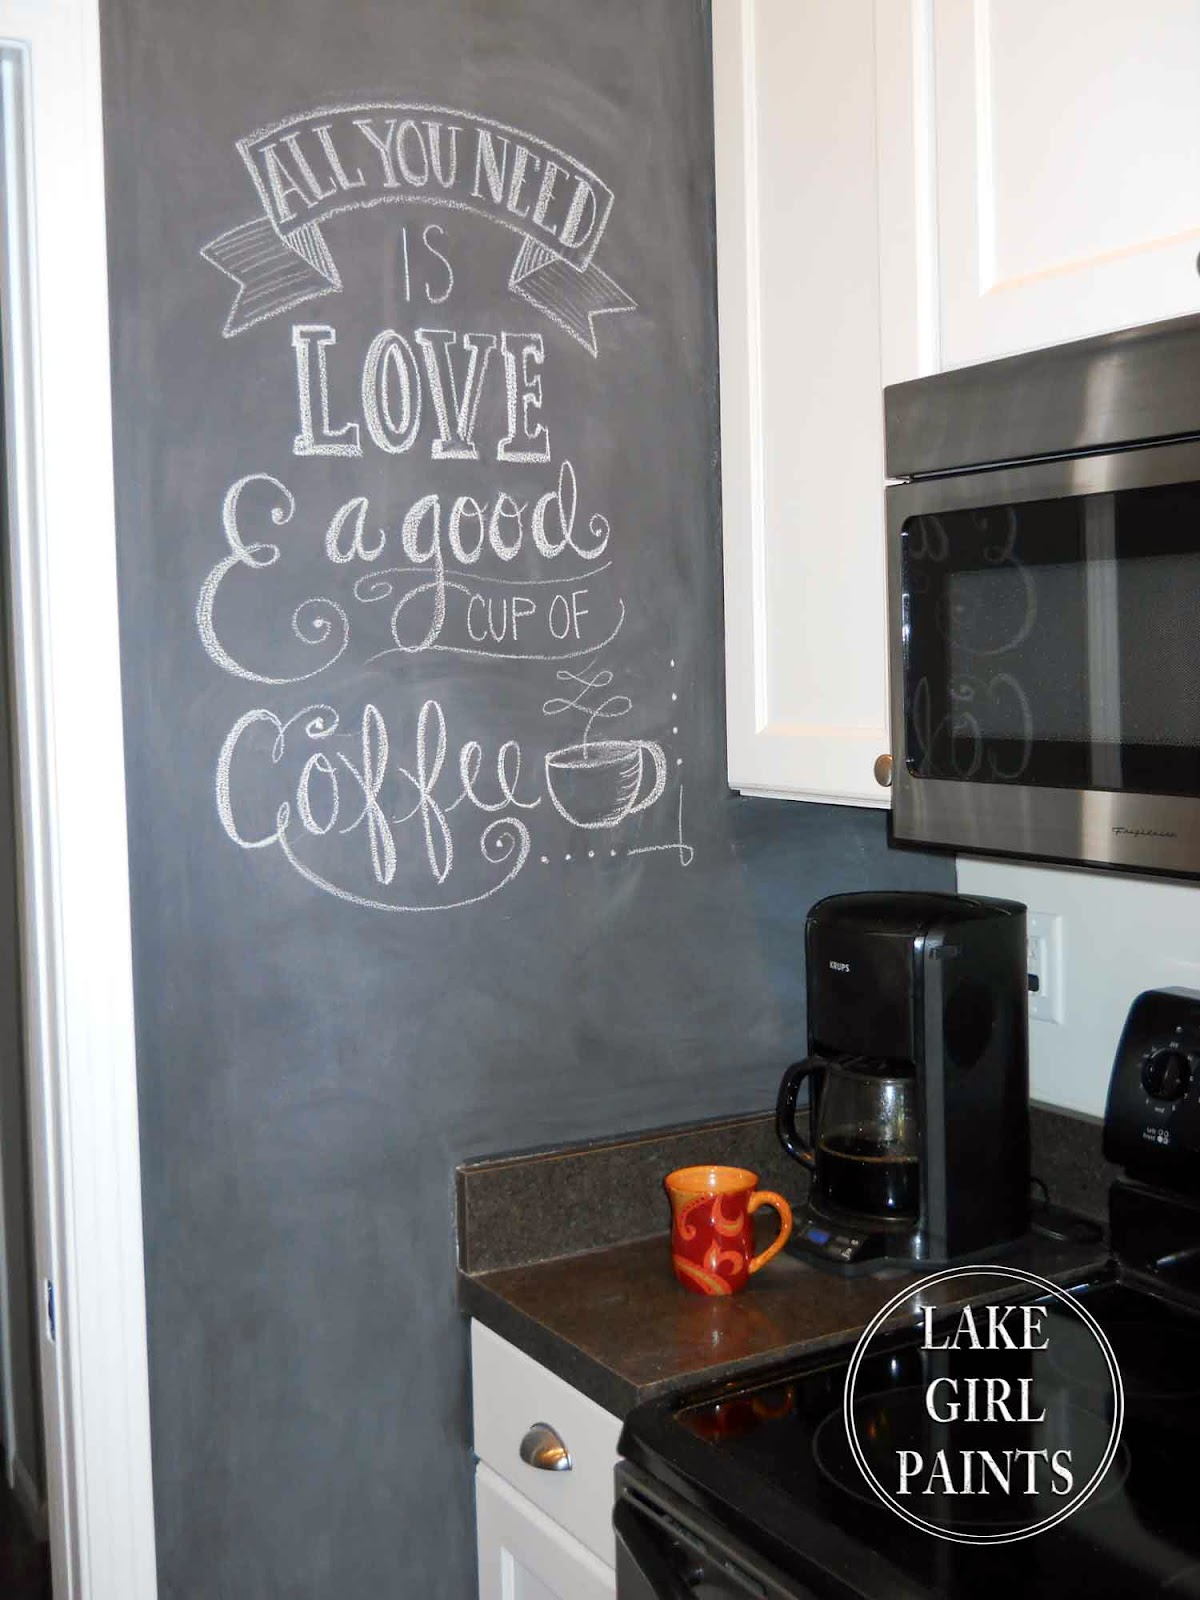 Lake girl paints painting my kitchen wall with chalkboard for Chalkboard kitchen ideas